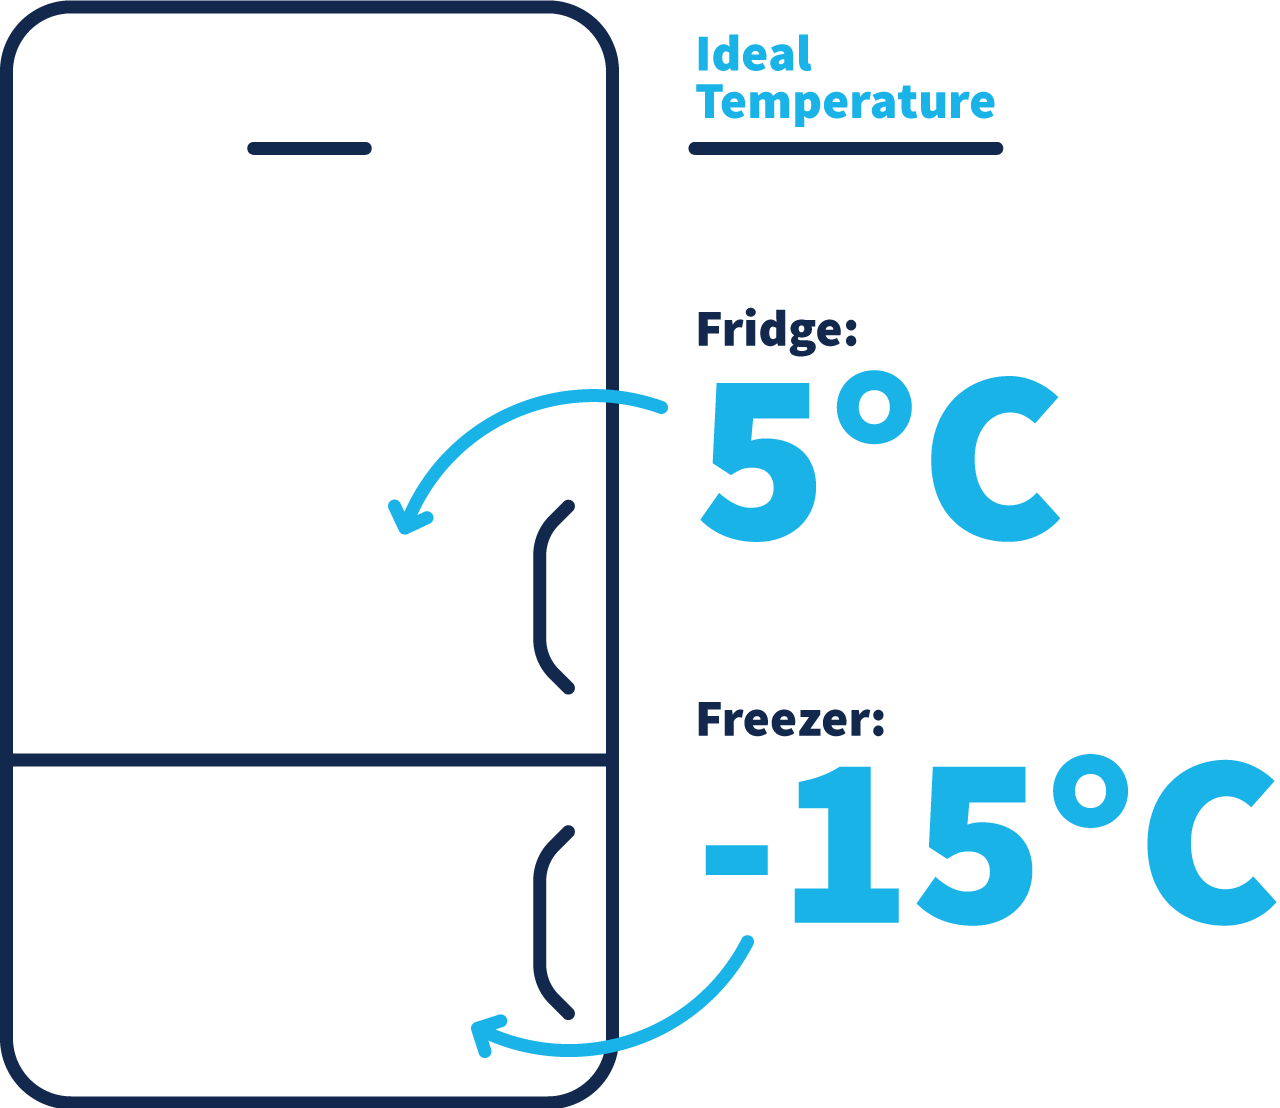 A diagram depicts a fridge with the fridge section outlined to be most energy efficient at 5 degrees and the freezer section to be most energy efficient at -15 degrees.